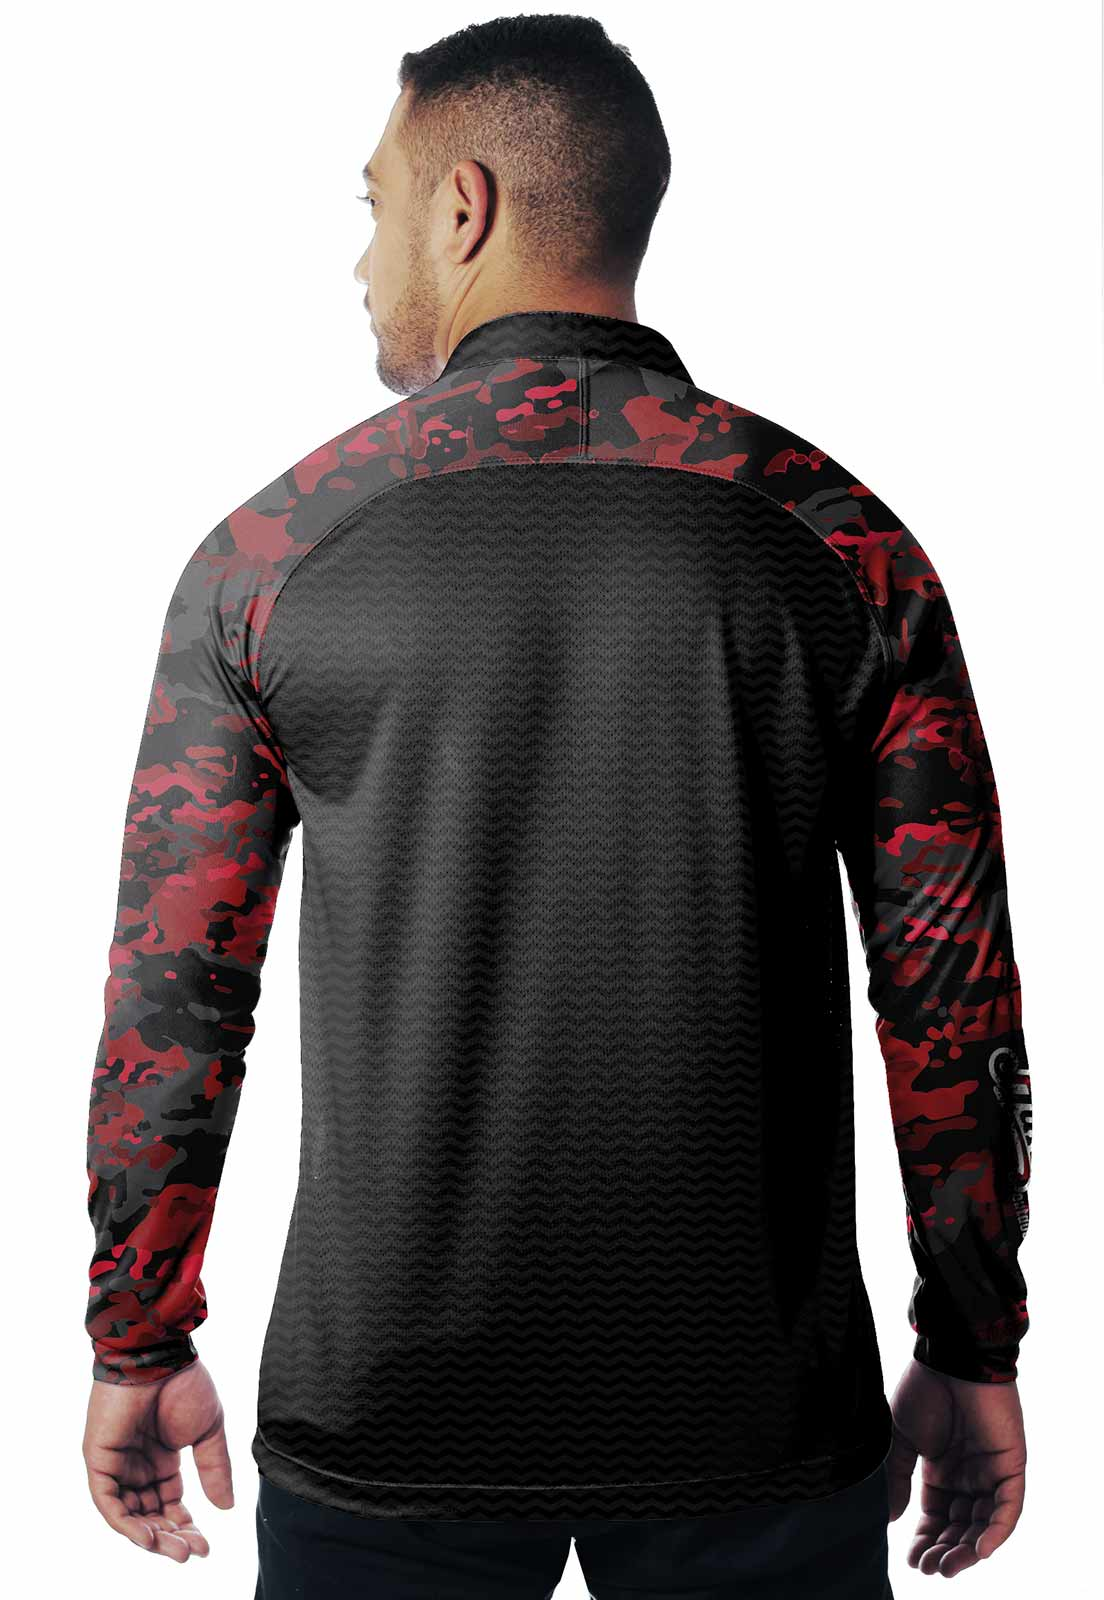 CAMISA DE PESCA FISH PRO 13 MASCULINA + BANDANA GRÁTIS  - REAL HUNTER OUTDOORS